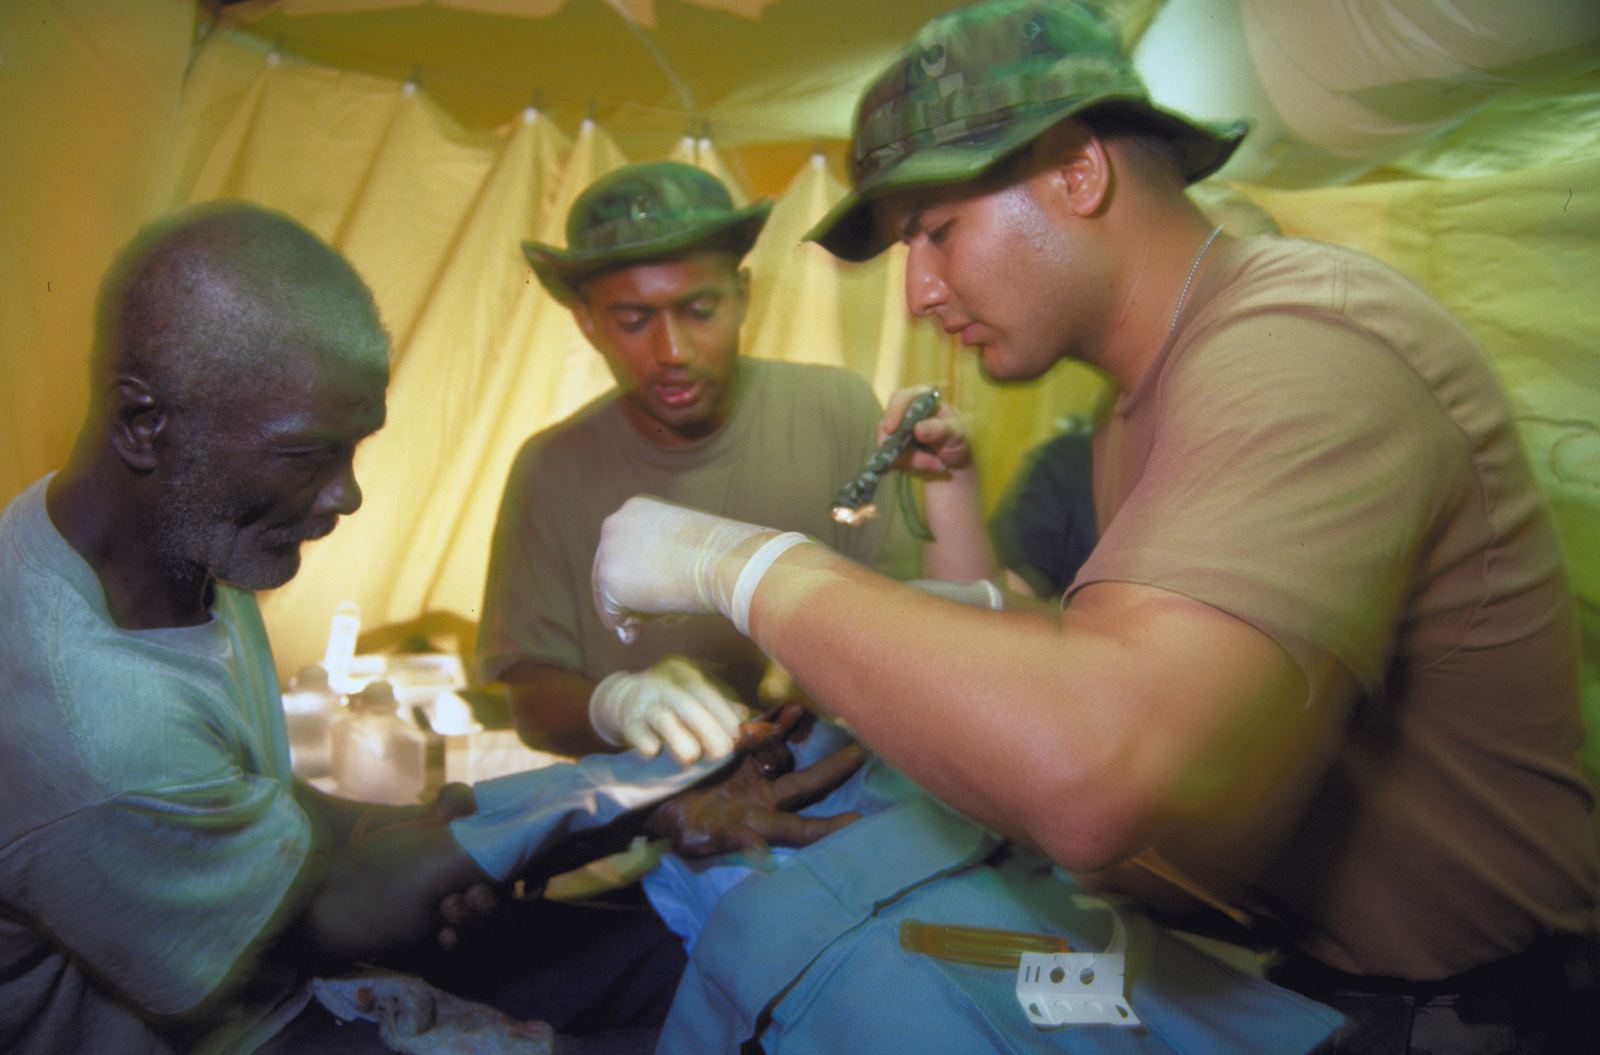 Dr. (CAPT.) Sebastian F. Cherian and AIRMAN 1ST Class Robert D. Gomez with the 49th Medical Group, Holloman Air Force Base, N.M. works on the Guyanese man's badly cut finger. The 49th Medical Group deployed 35 personnel in support of New Horizon '97, the first combined humanitarian and civic assistance exercise conducted between the United States and Guyana. Military personnel from Air Force, Air Force Reserve & National Guard, Army, Army National Guard and Marine Corps participated in the exercise which included engineering and medical readiness training